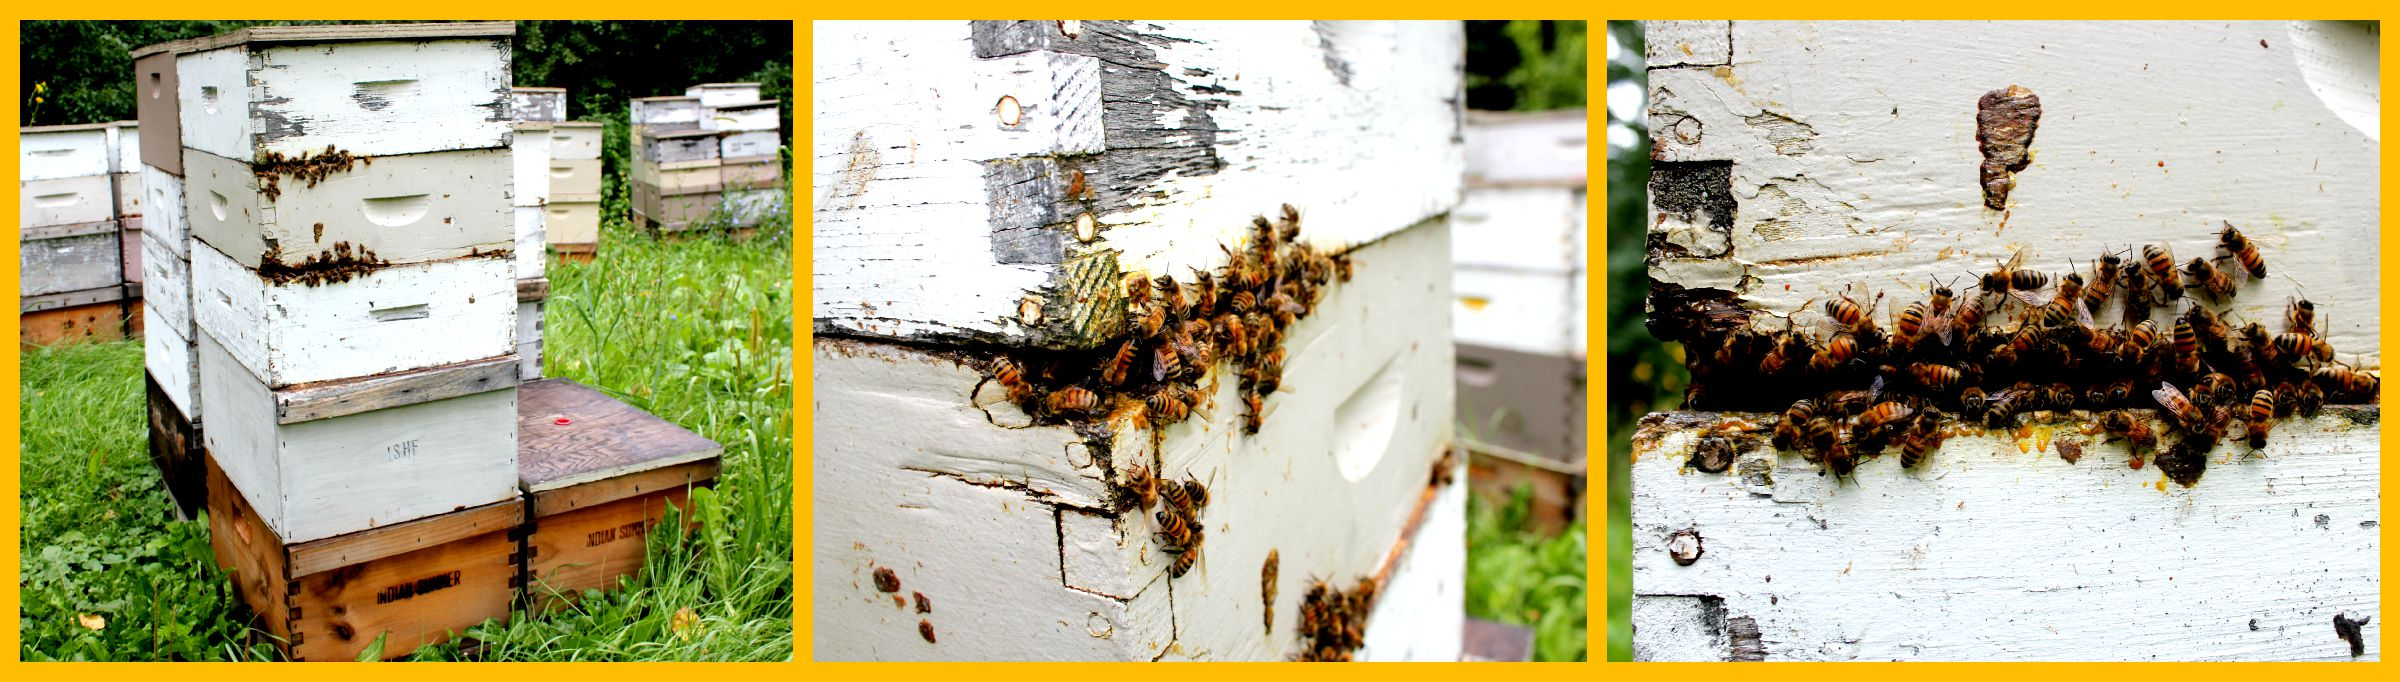 bee-yard-Collage